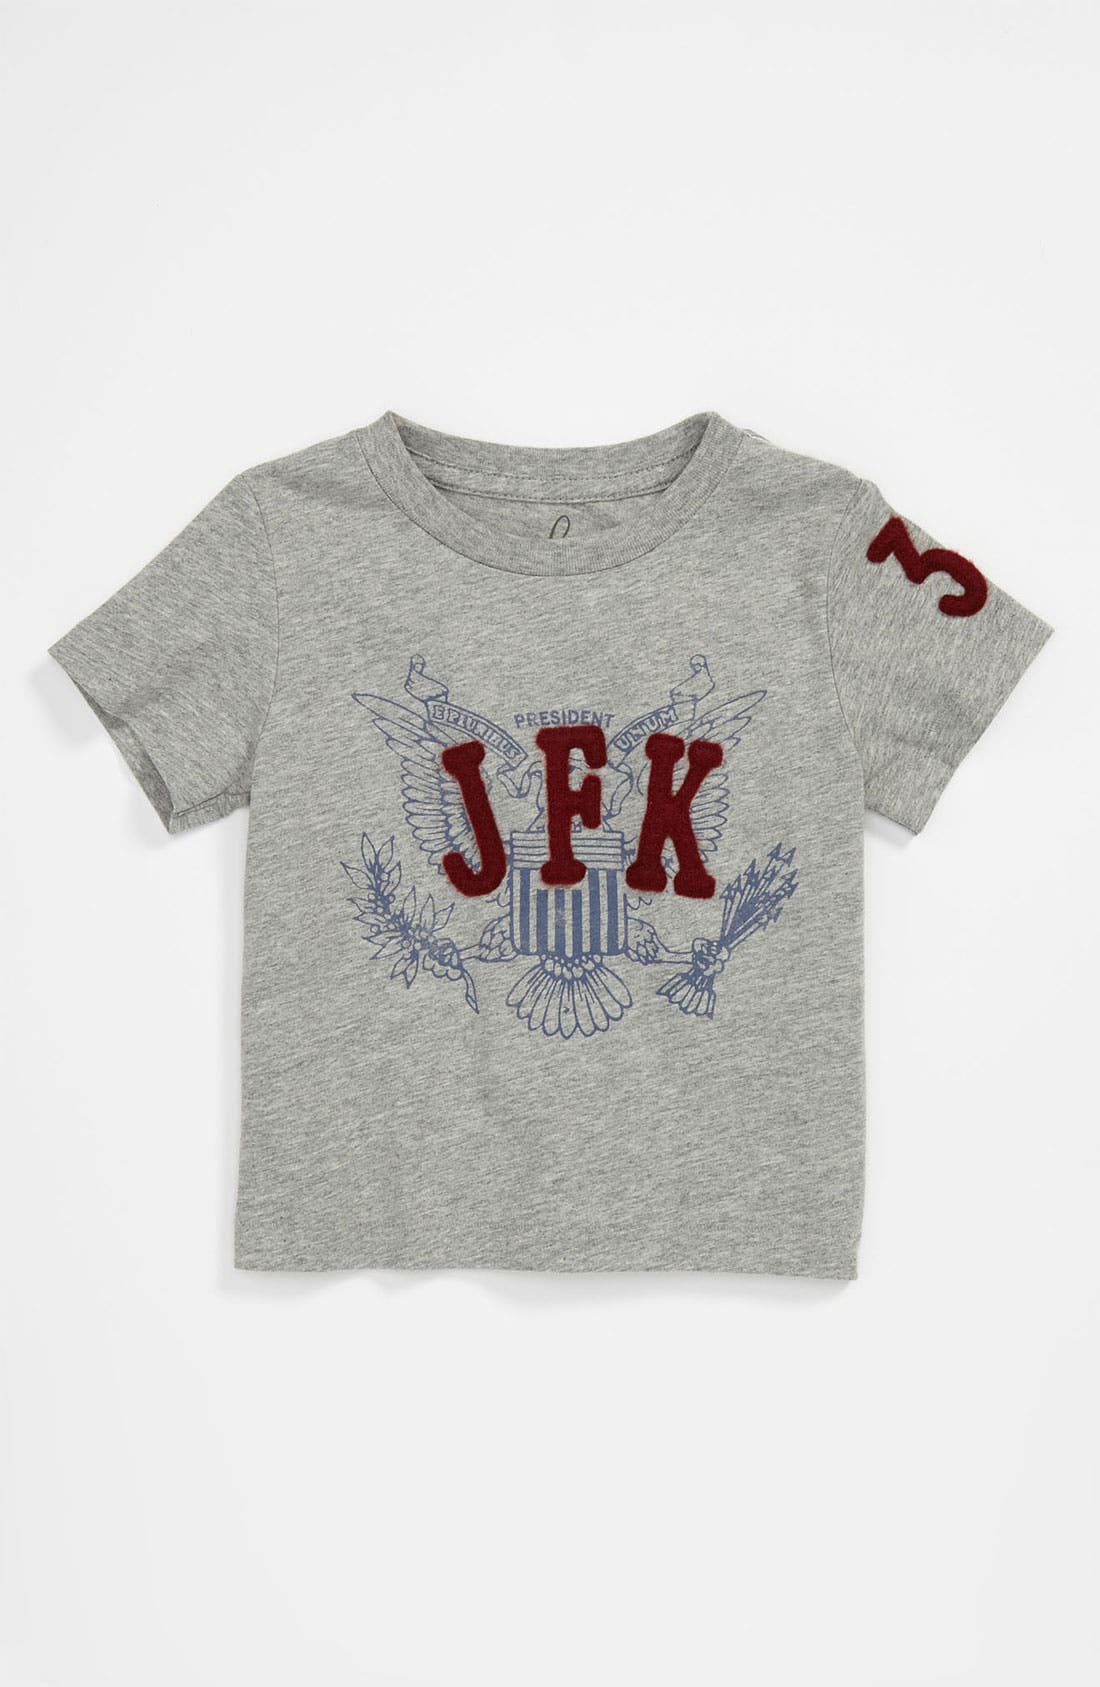 Main Image - Peek 'JFK' T-Shirt (Infant)